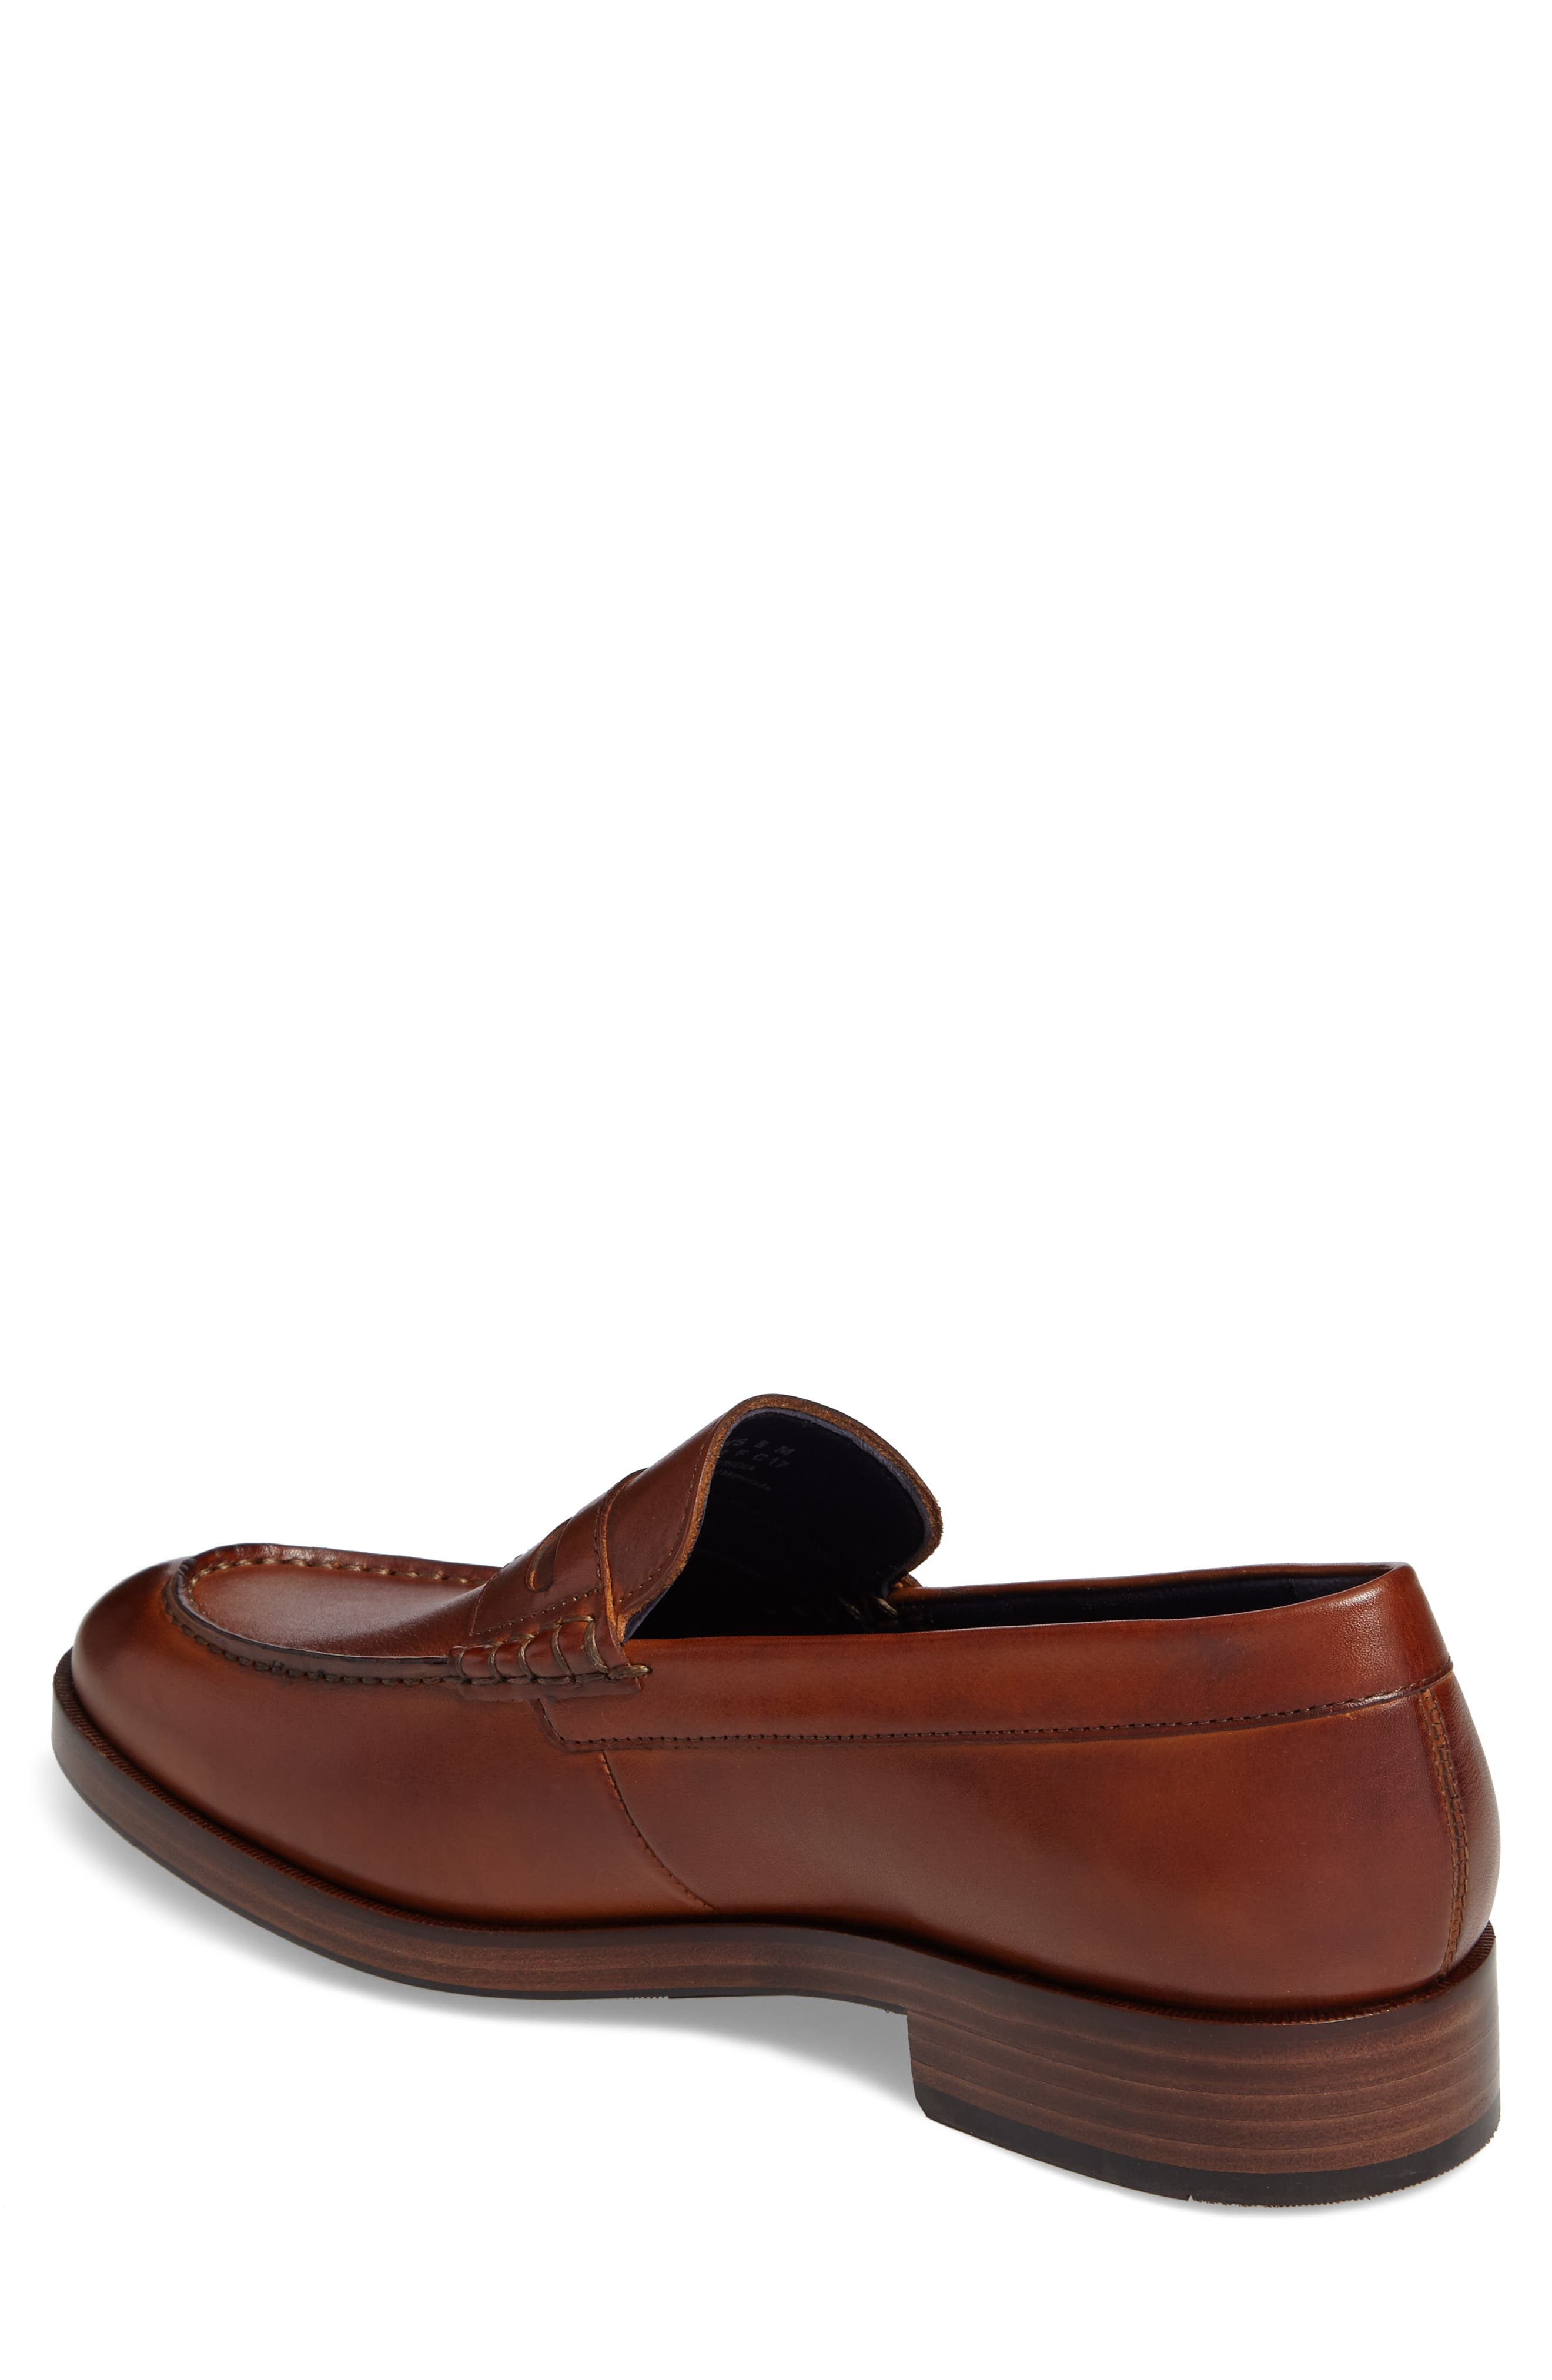 COLE HAAN, Harrison Grand Penny Loafer, Alternate thumbnail 2, color, COGNAC/ DARK NATURAL LEATHER